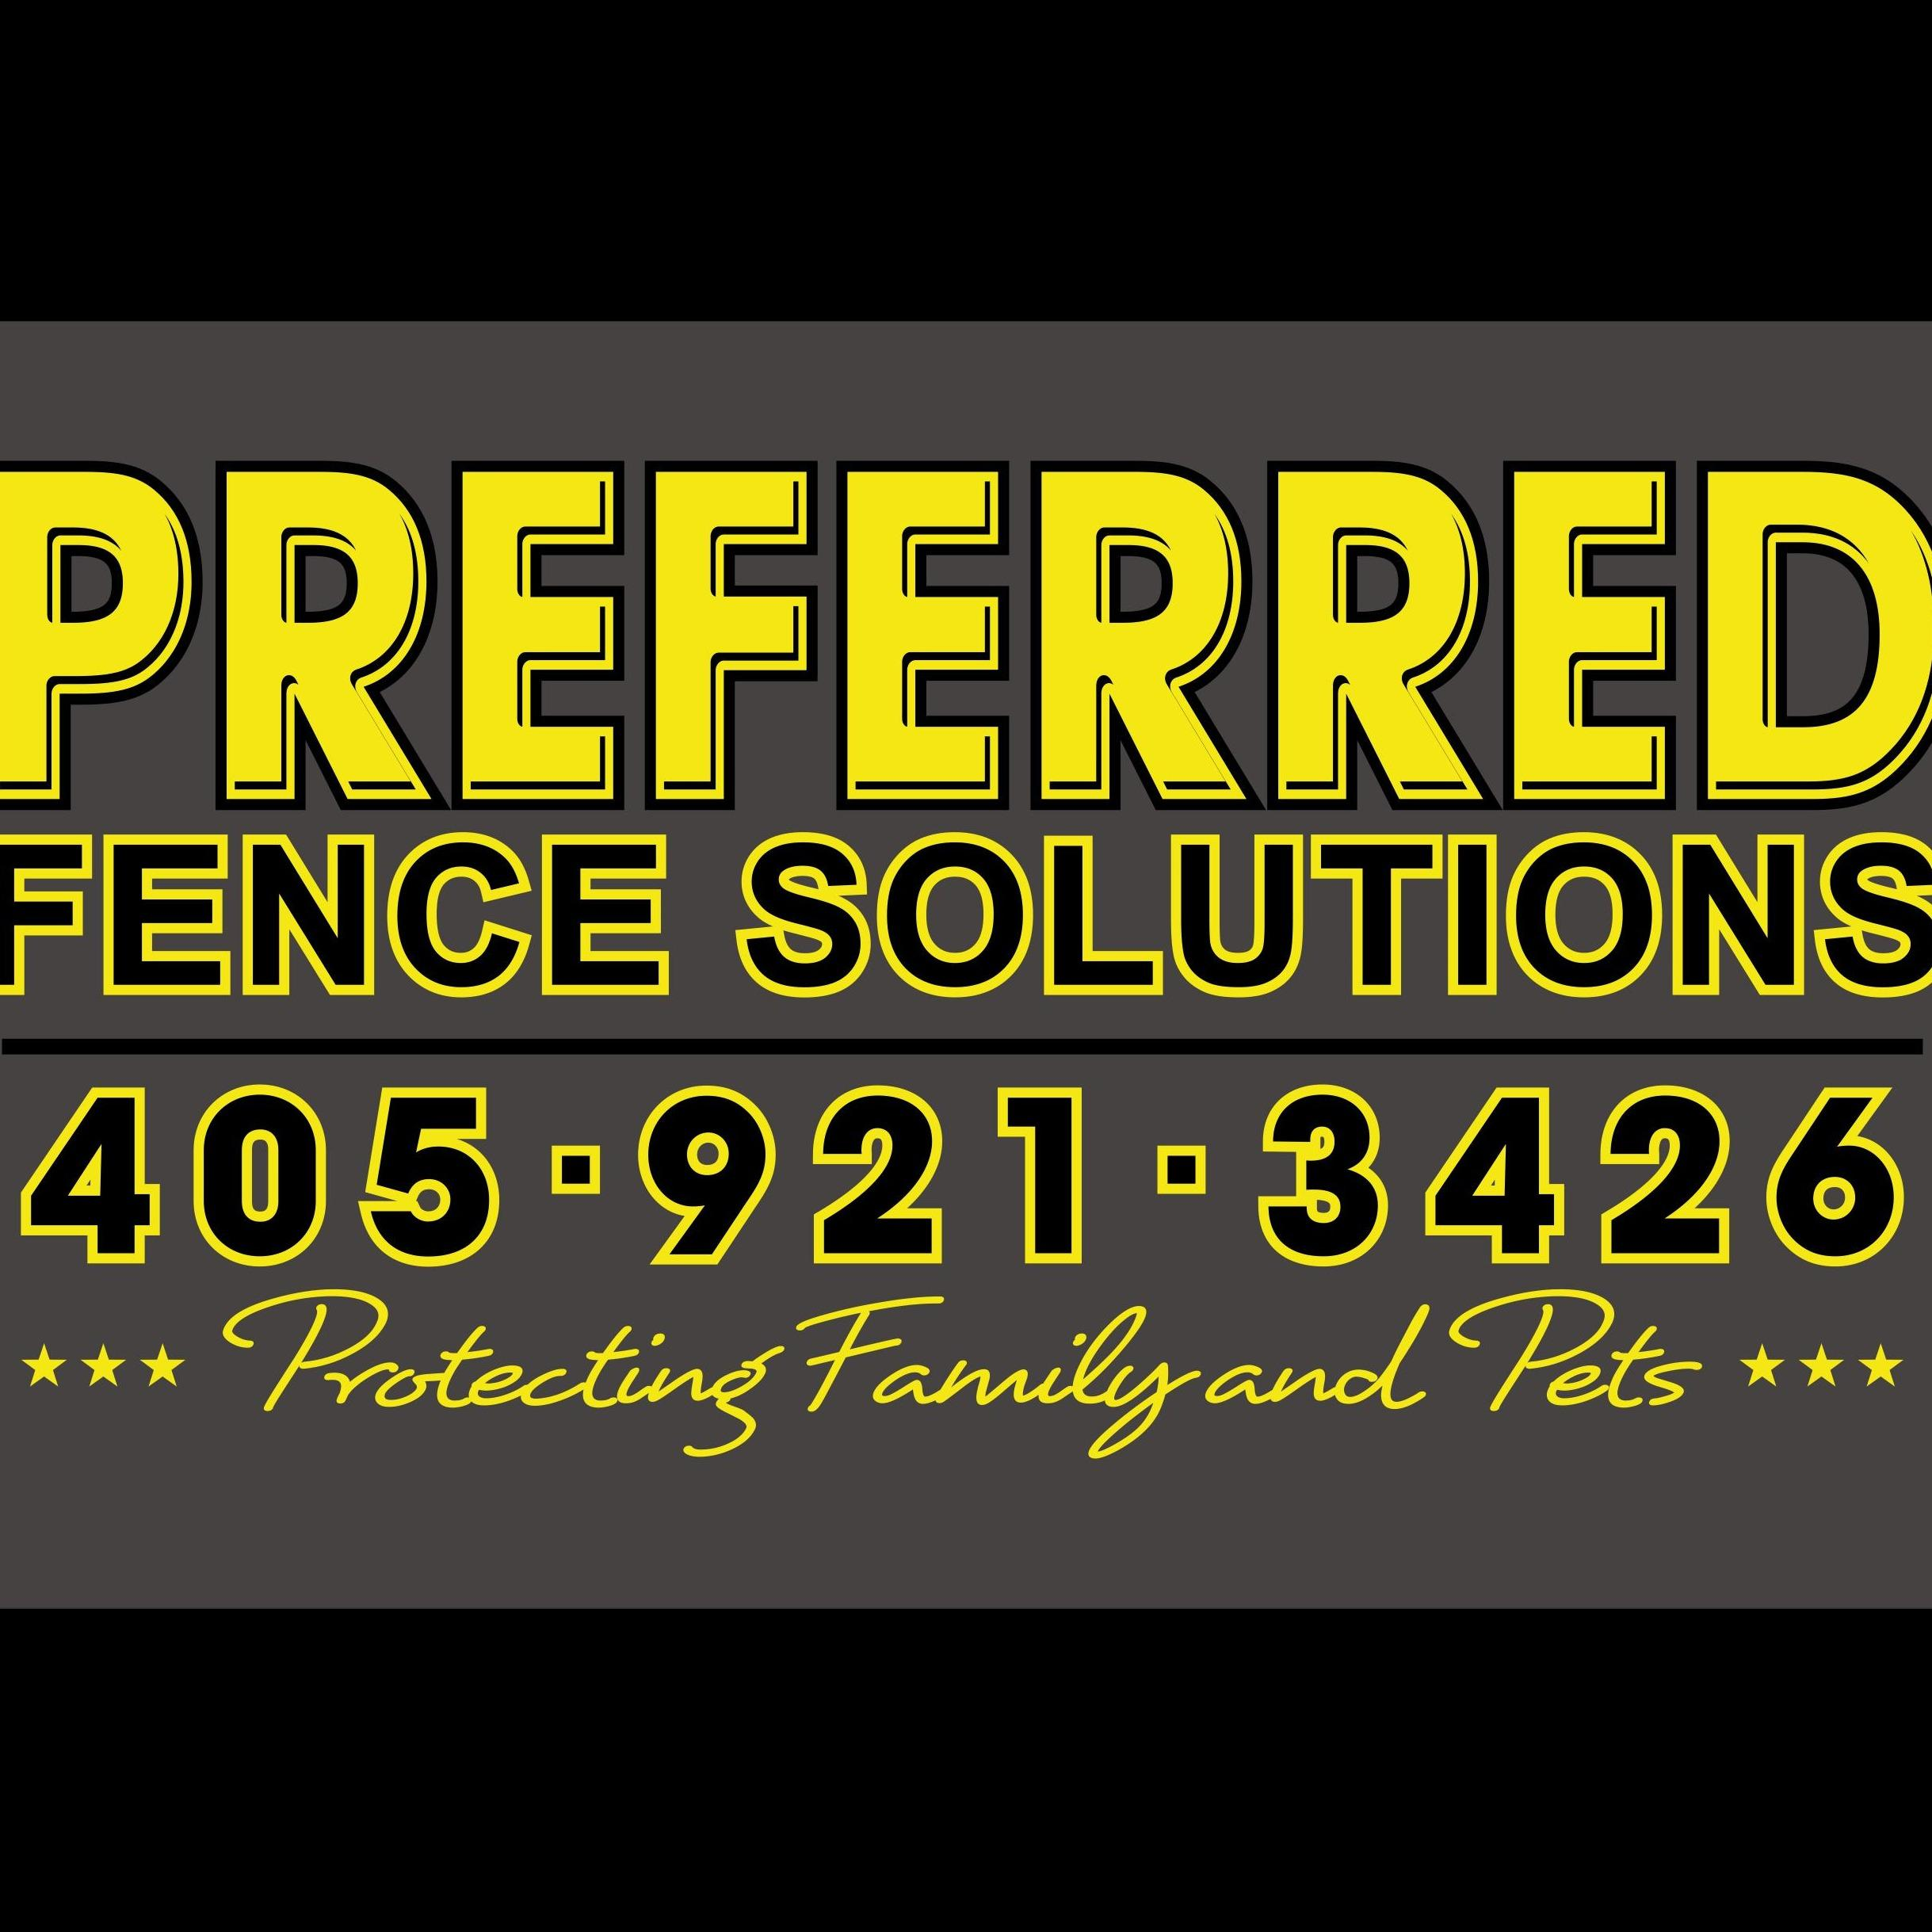 Preferred Fence Solutions INC.